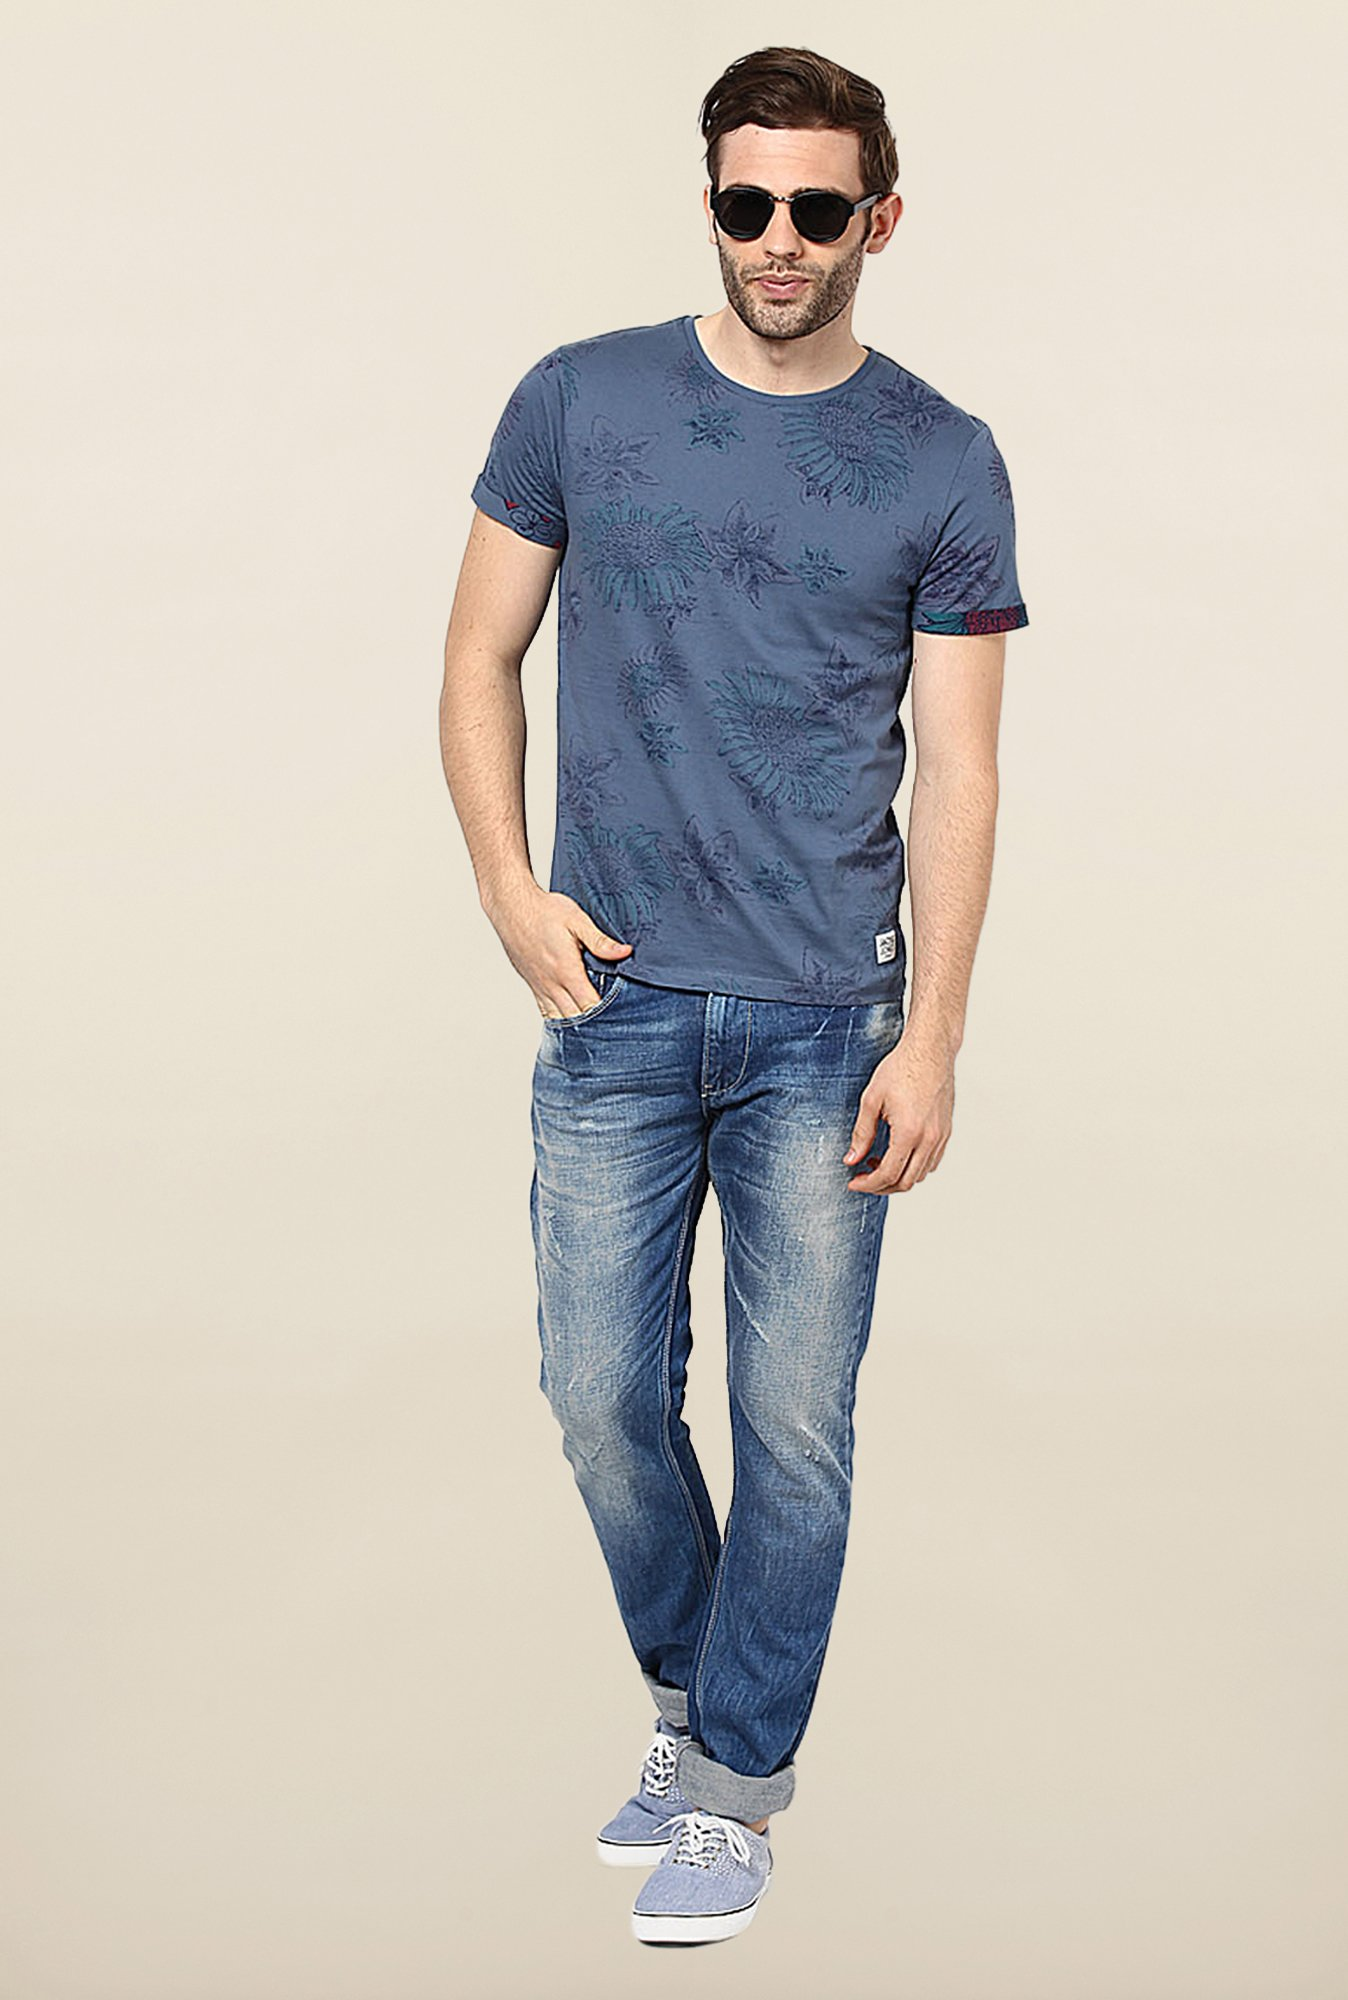 Jack & Jones Blue Floral Printed T-Shirt